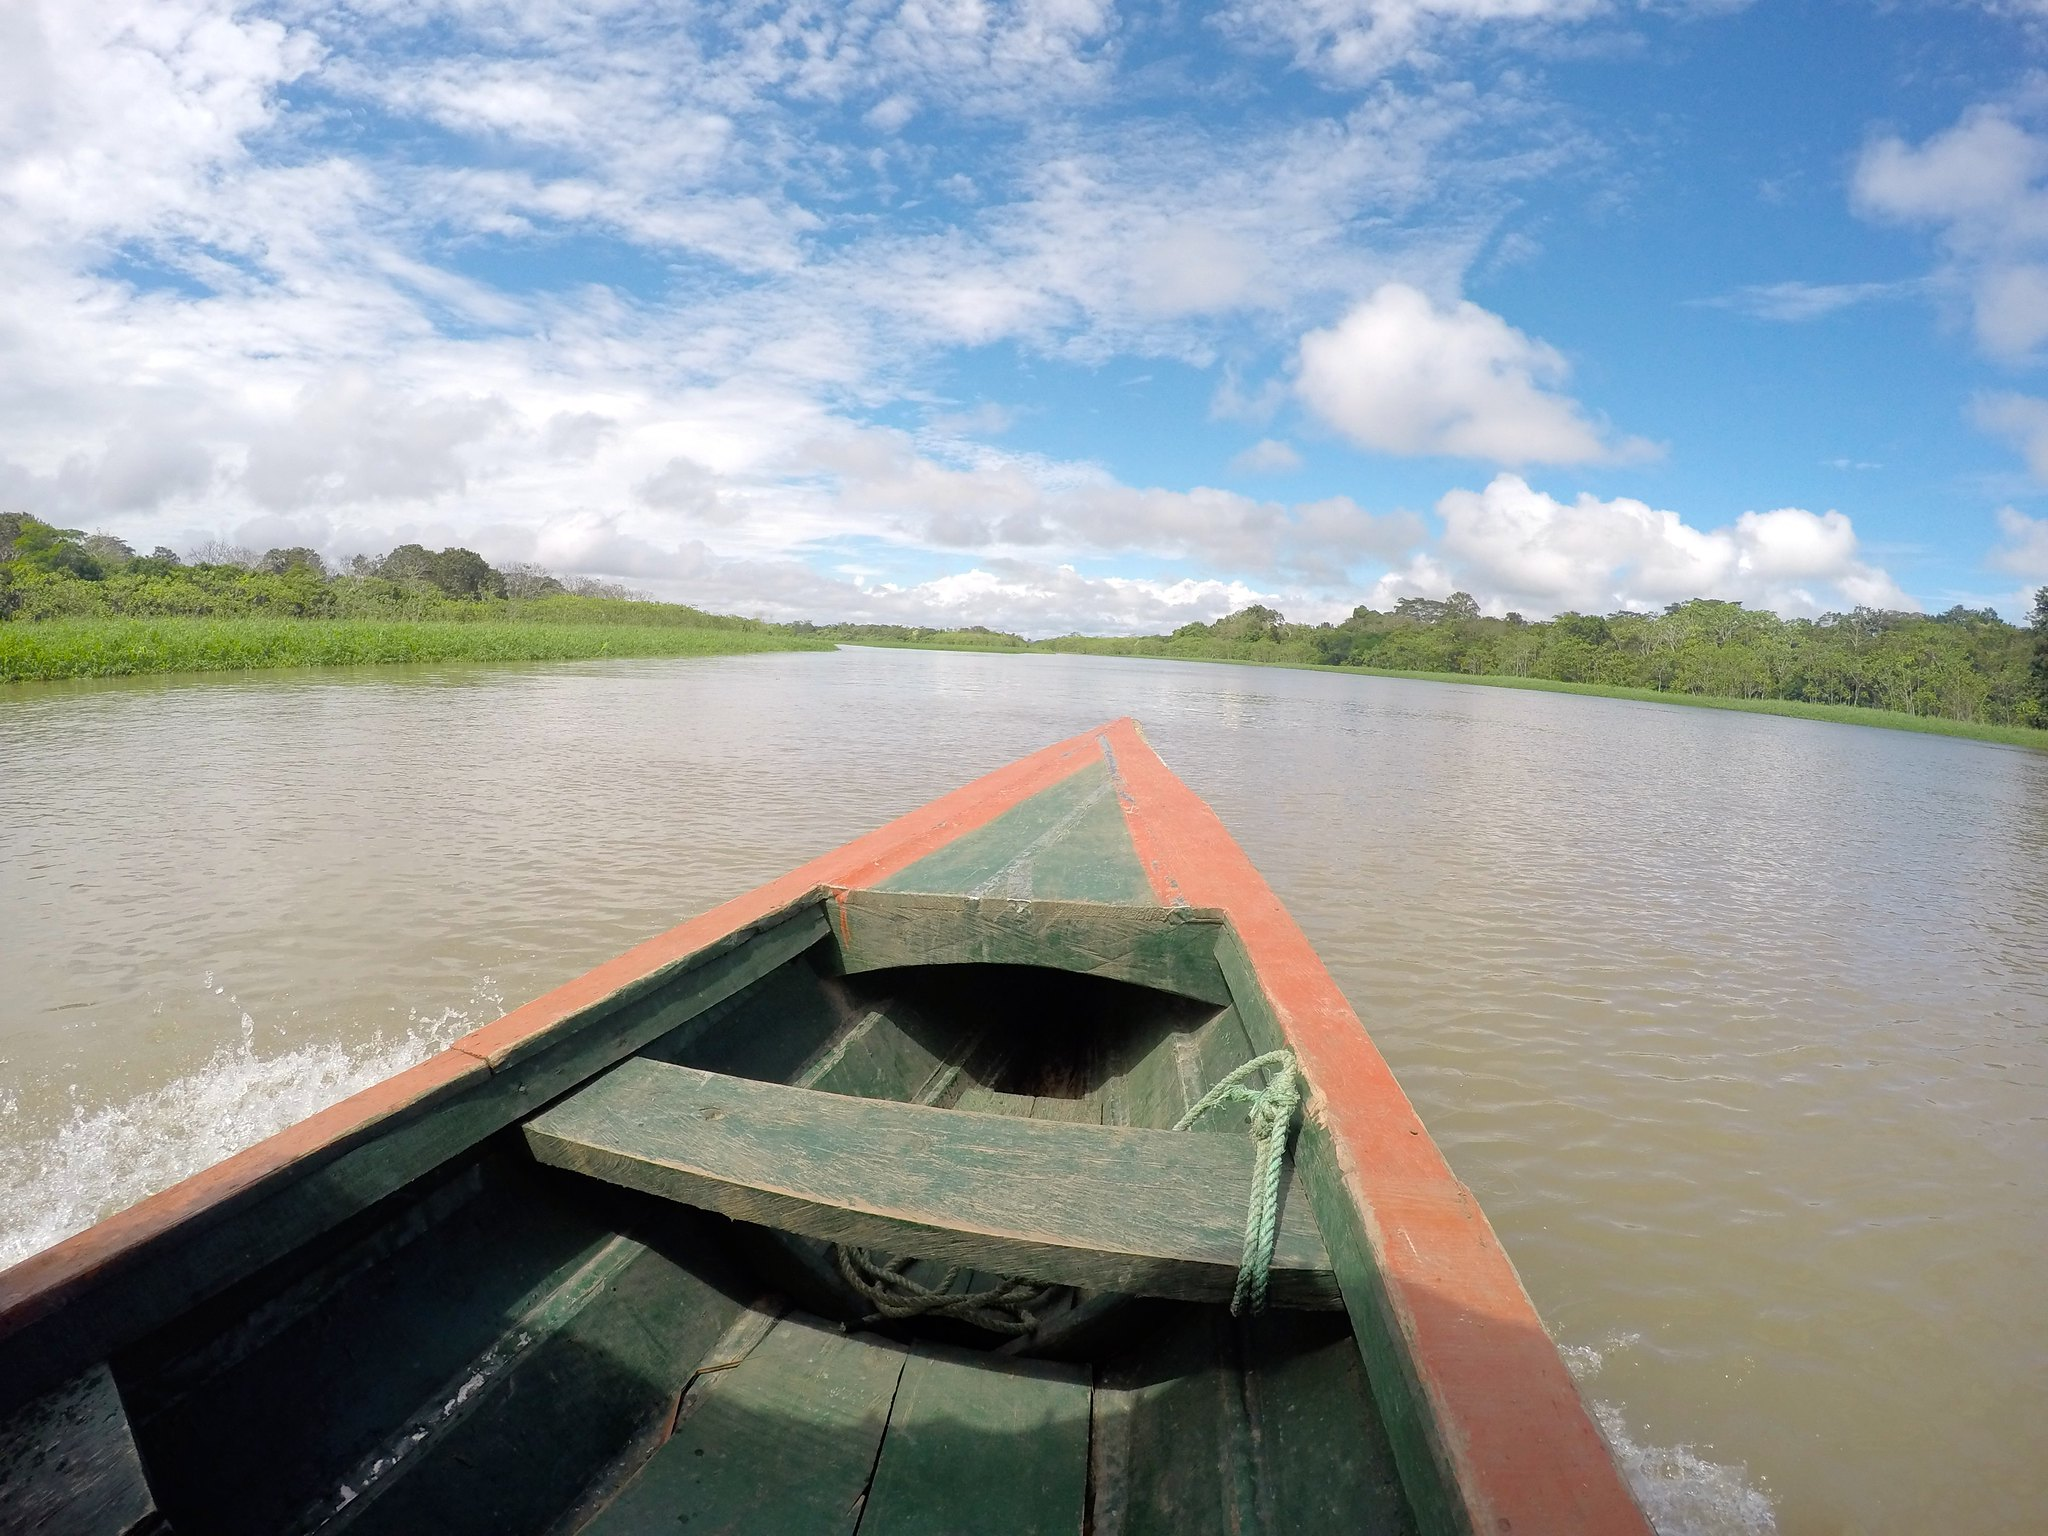 Pecapeca on the Amazon River